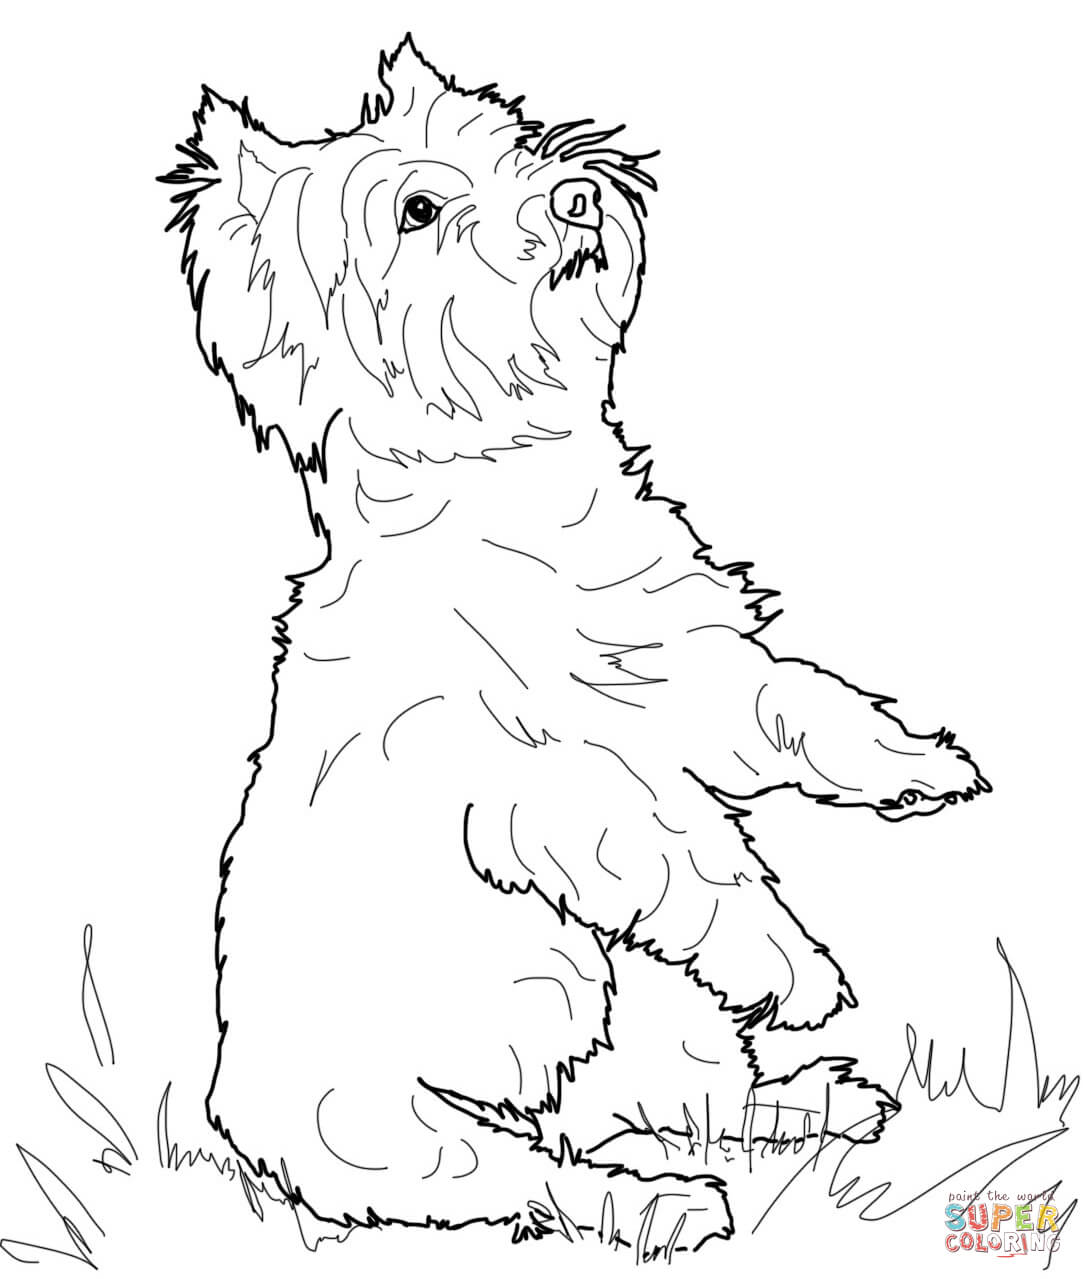 yorkie coloring sheet yorkie coloring sheet yorkie sheet coloring